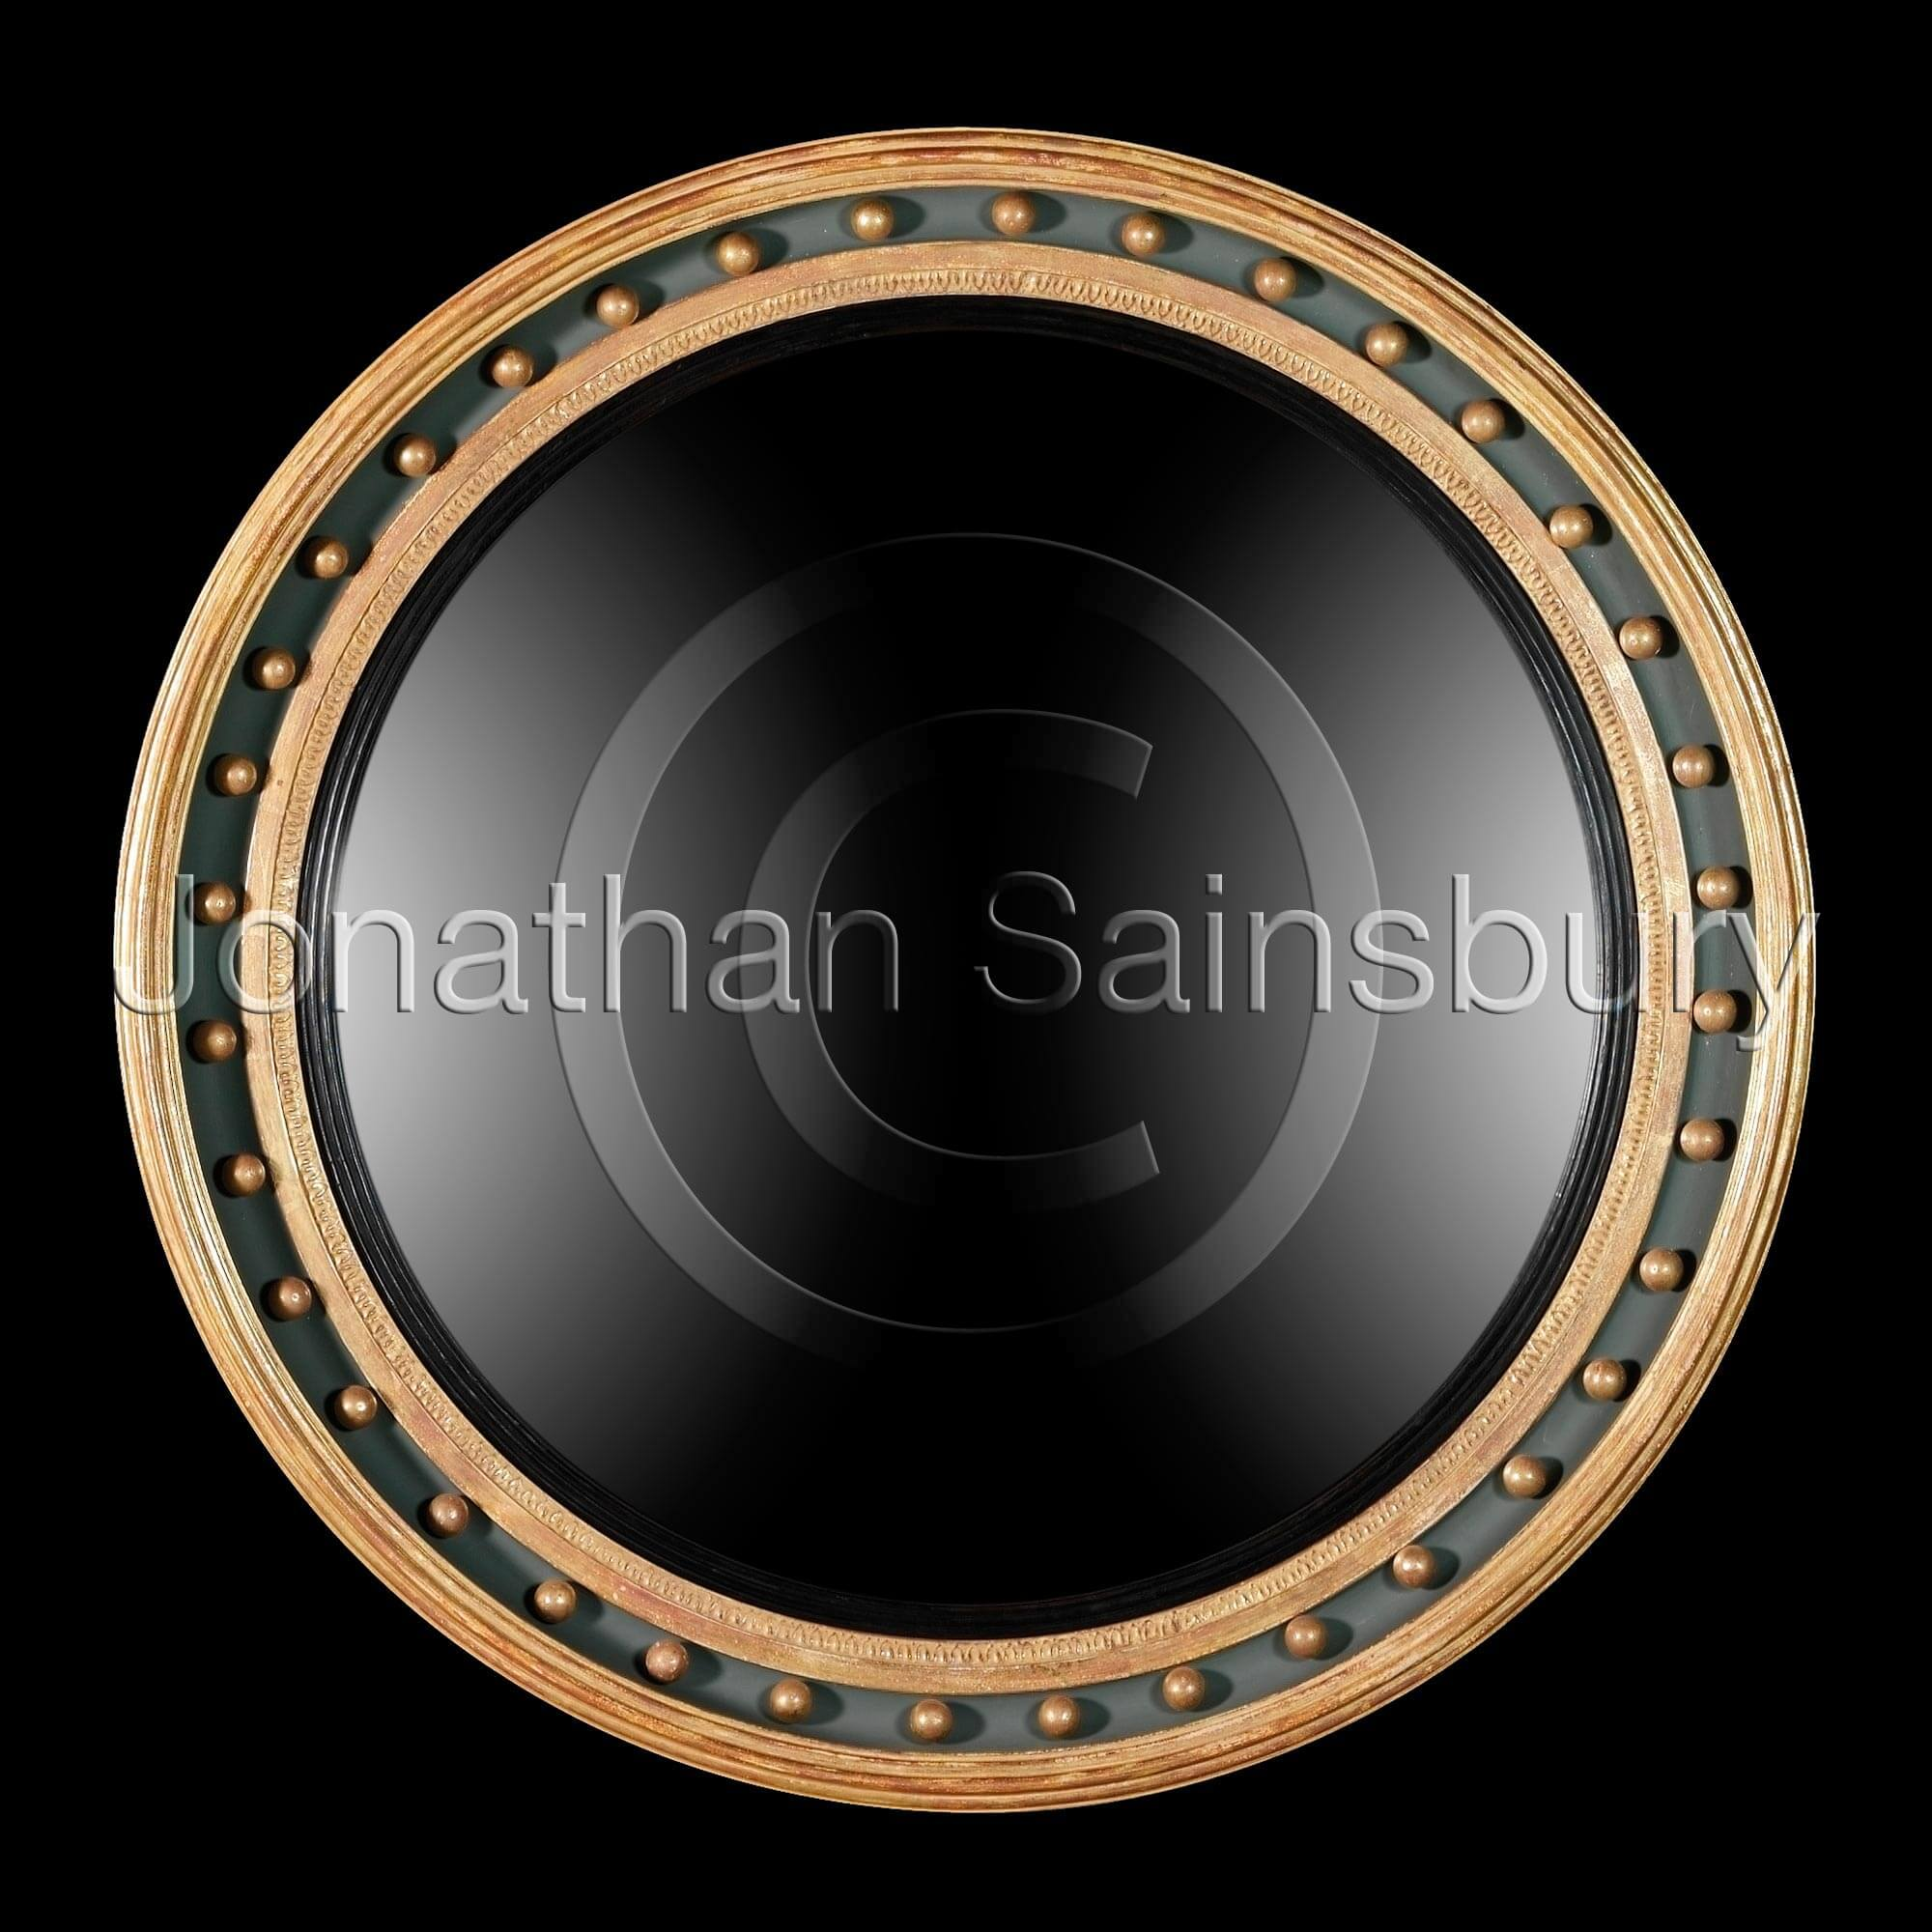 Regency convex mirror jonathan sainsbury for Convex mirror